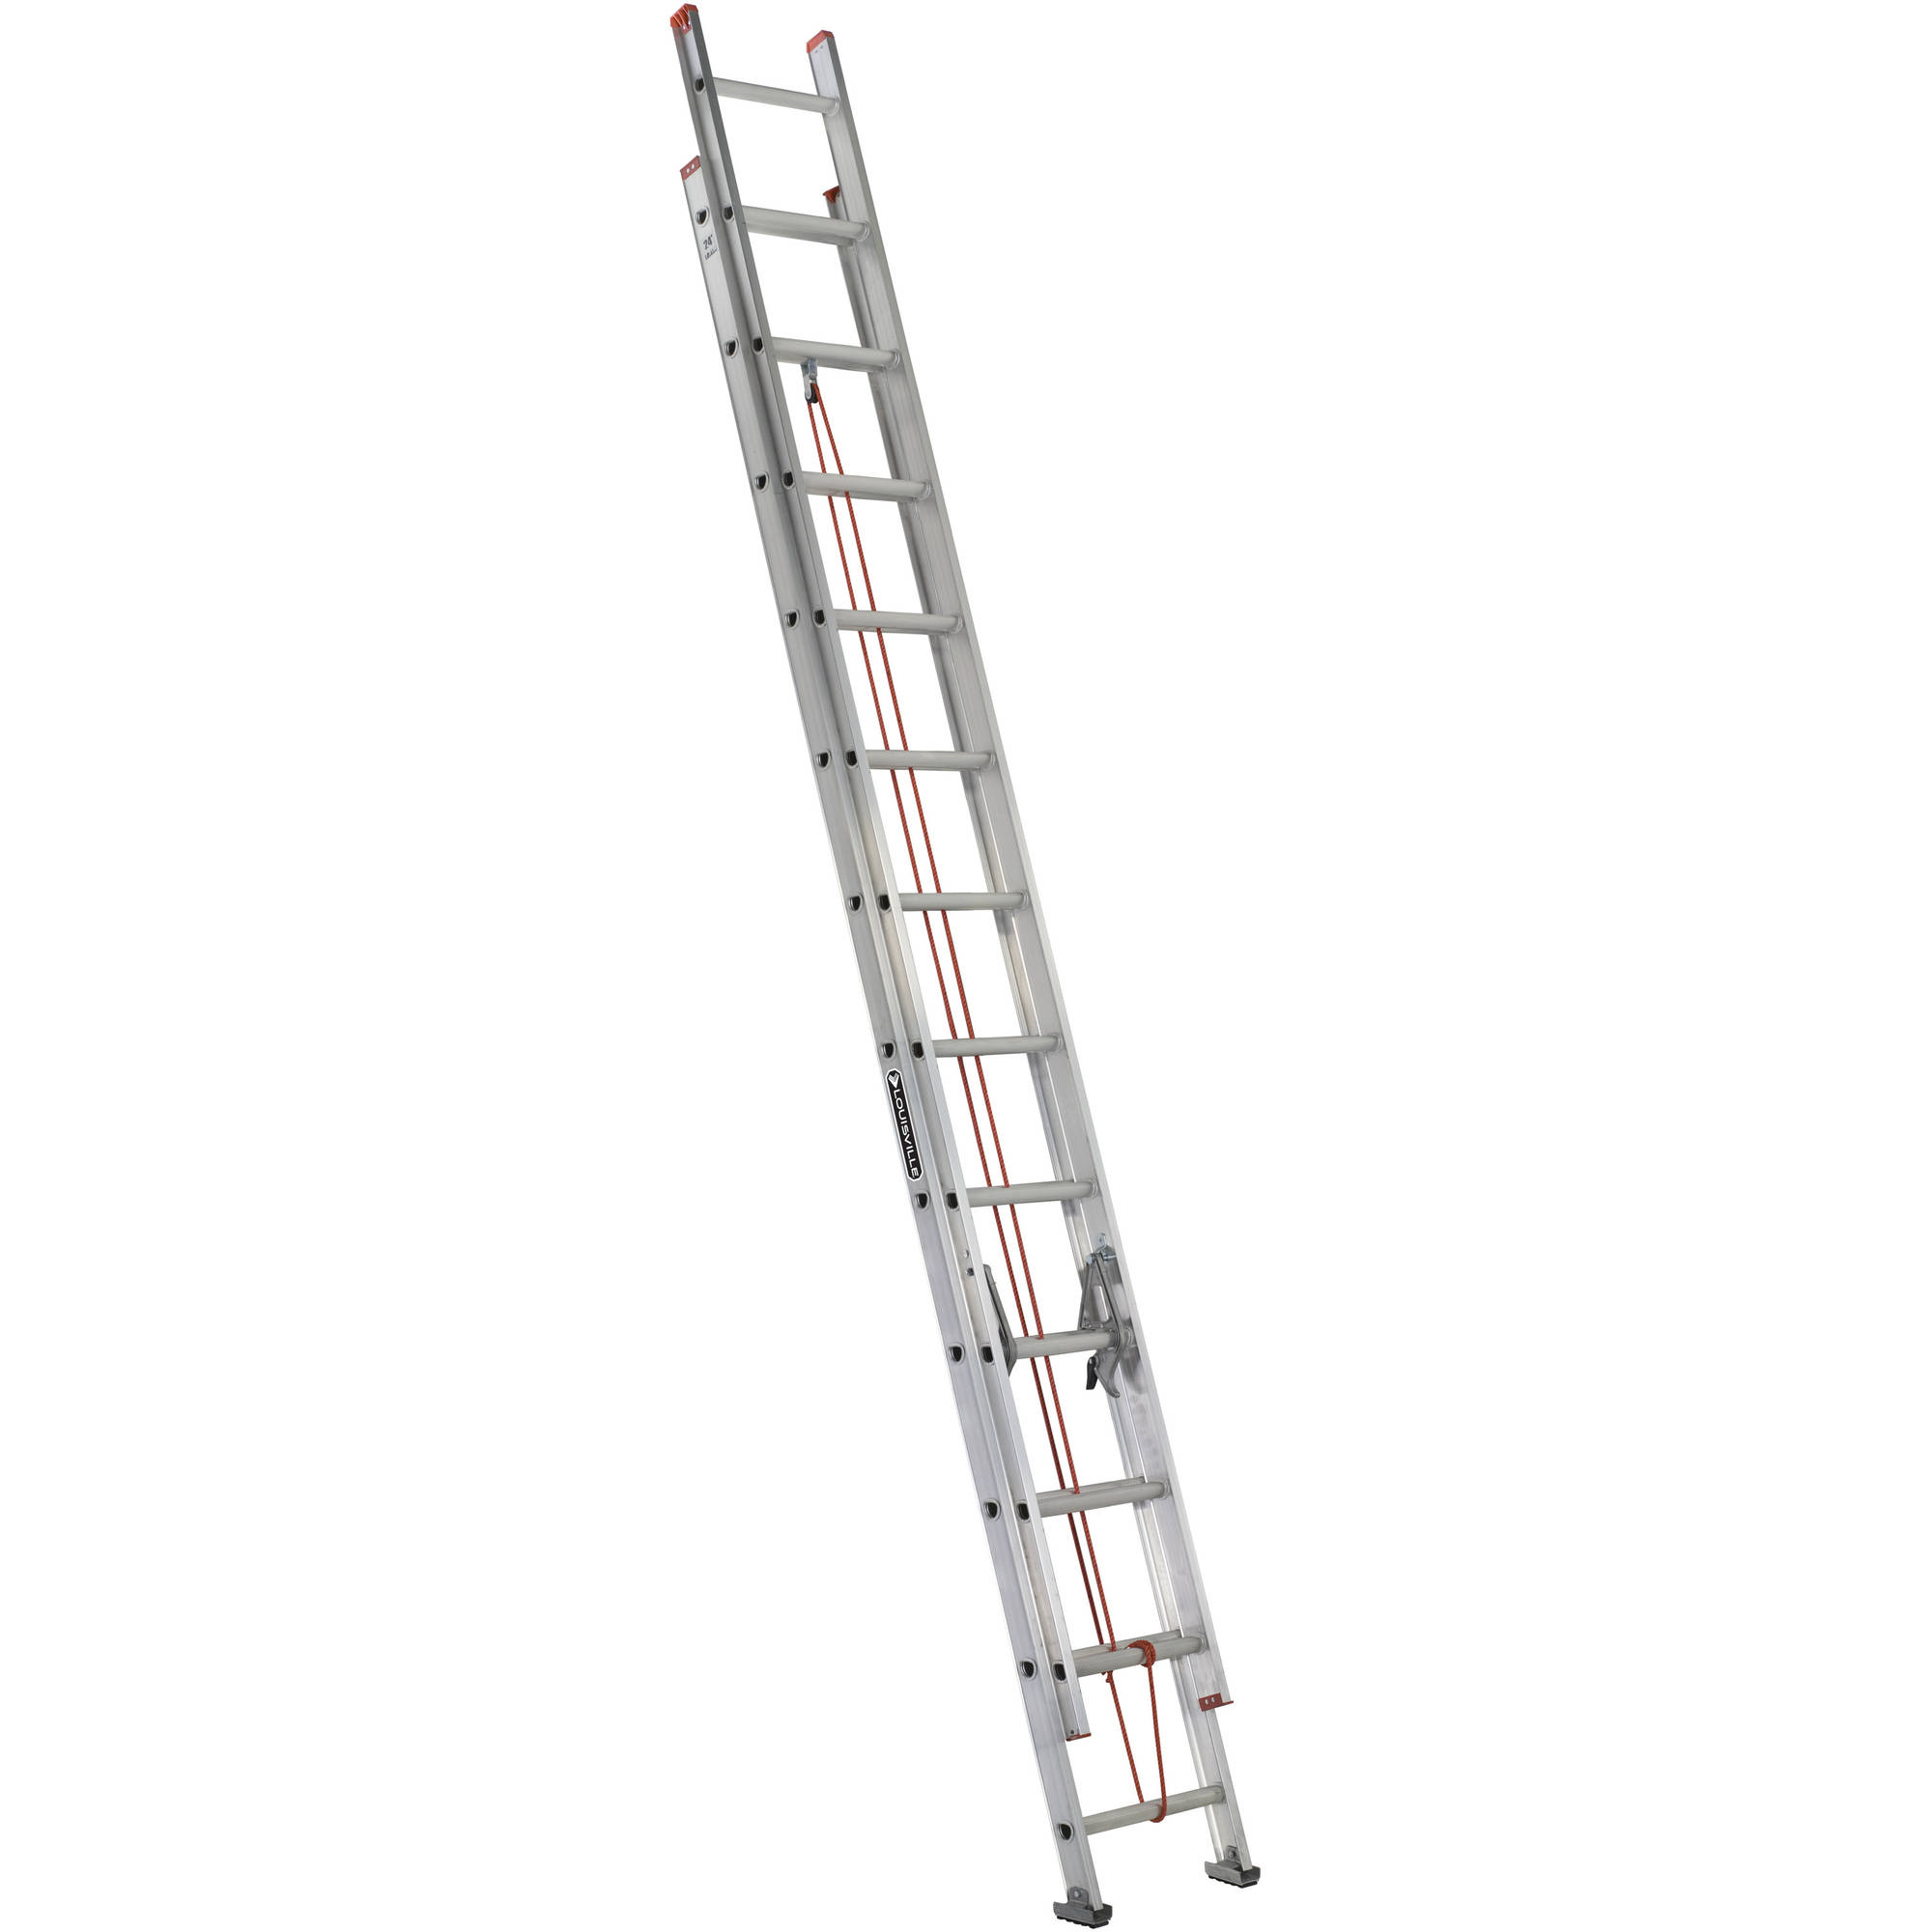 Louisville Ladder L-2324-24 24 ft. Aluminum Extension Ladder, Type III, 200 Lbs Load Capacity